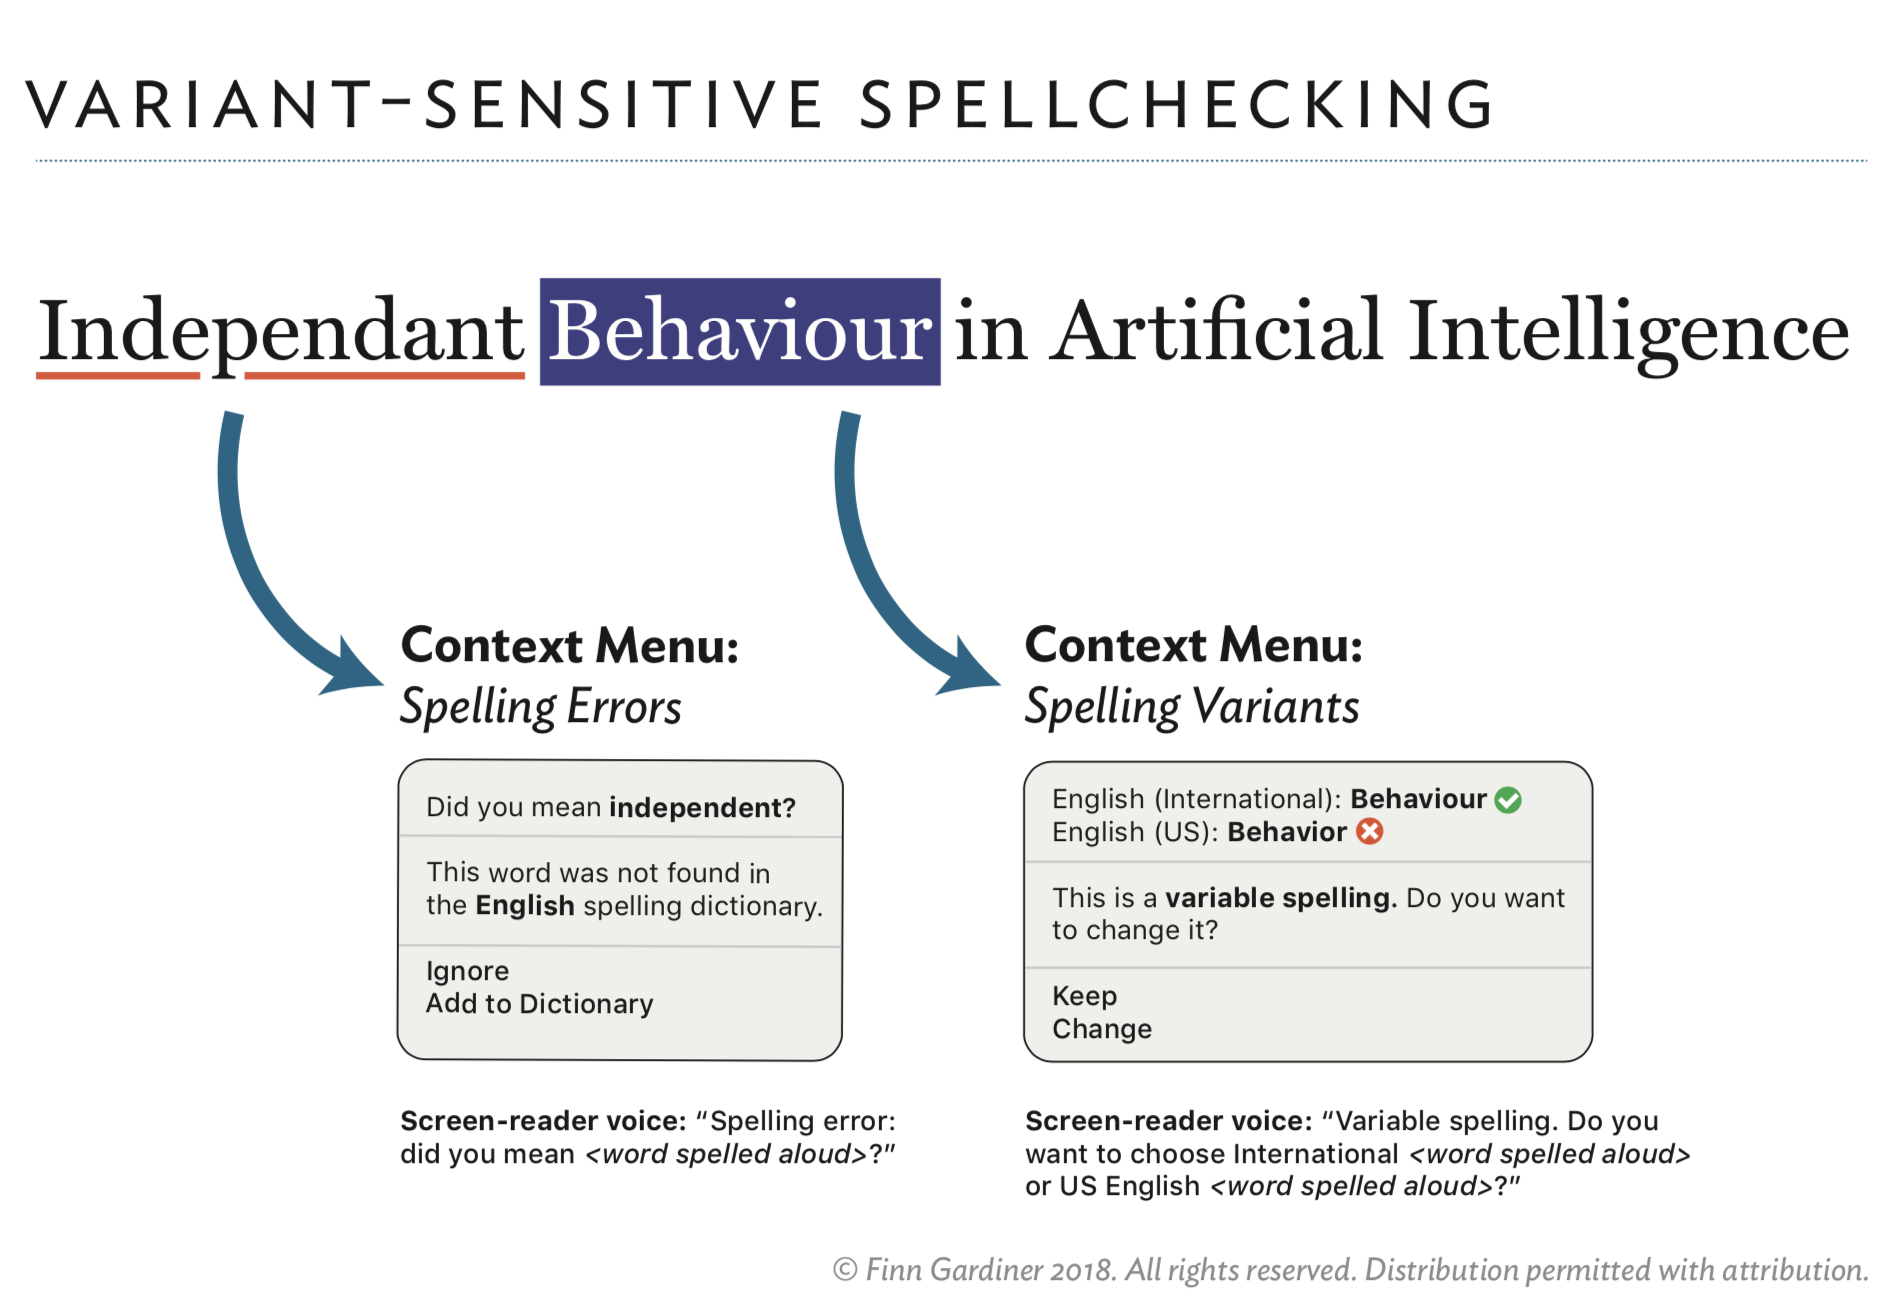 A mockup of a context-sensitive spellchecker. On the left, the spellchecker is marking a misspelling of independent as wrong. On the right, the spellchecker is suggesting different forms of the word behaviour depending on the dialect.